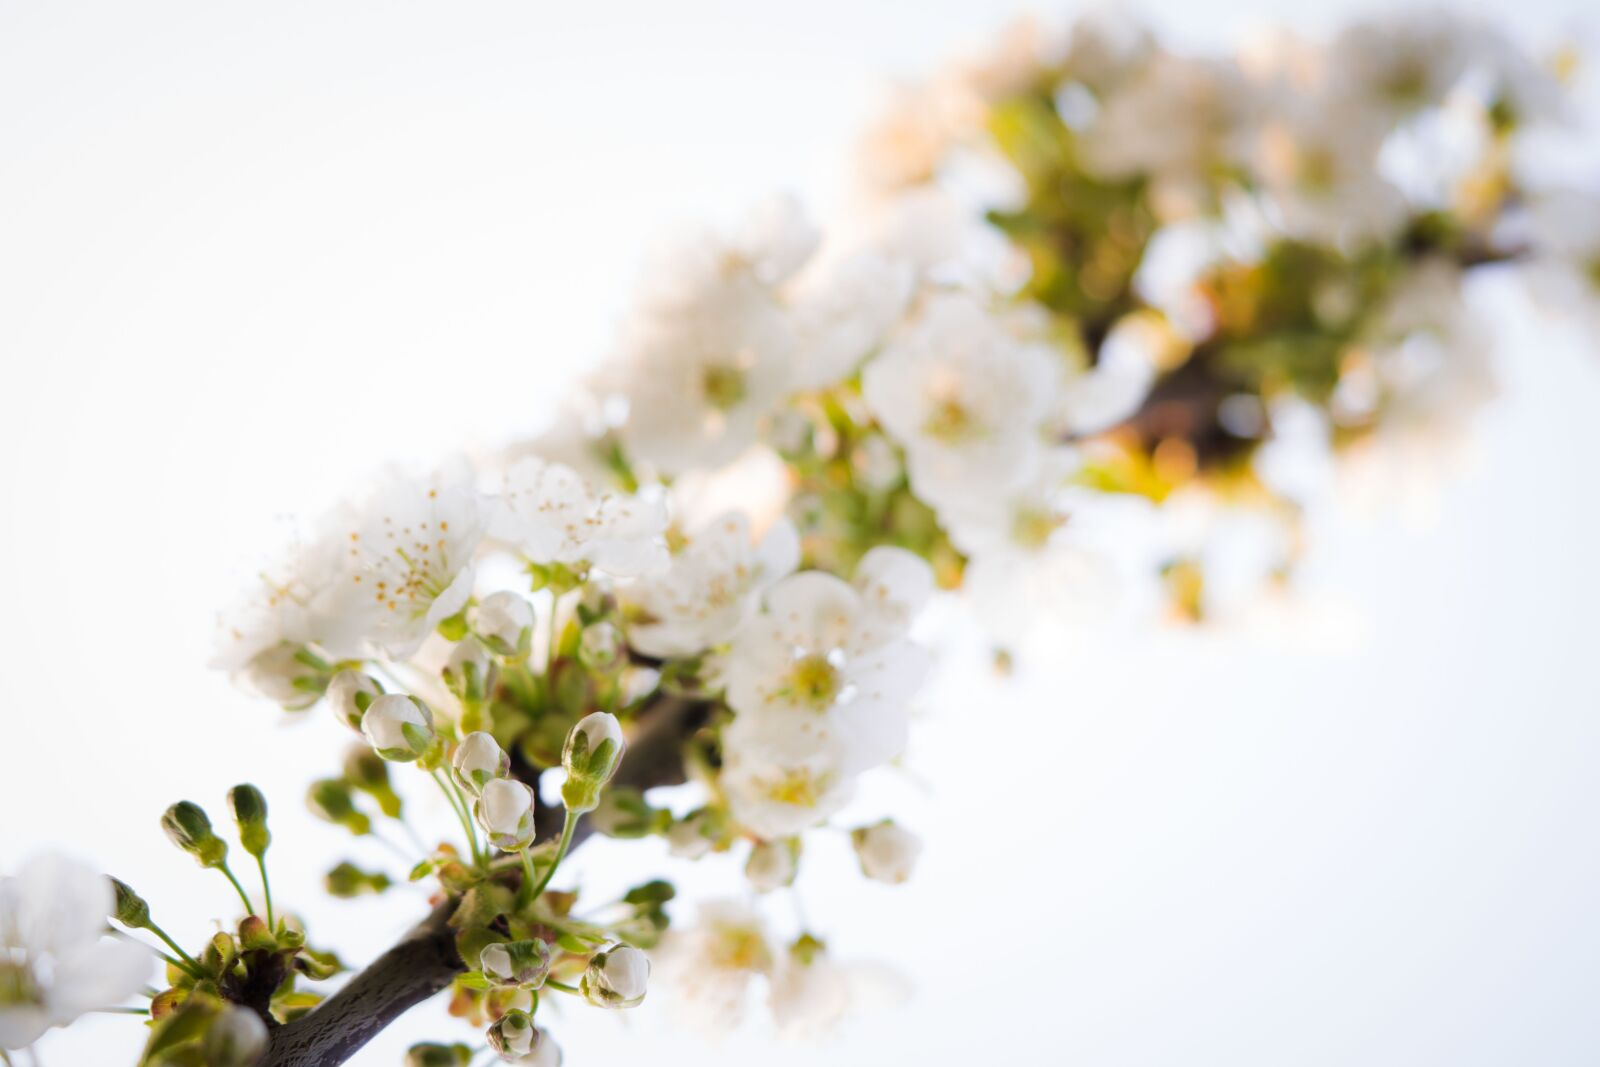 """Sony a6000 sample photo. """"Cherry blossoms, flowers, spring"""" photography"""